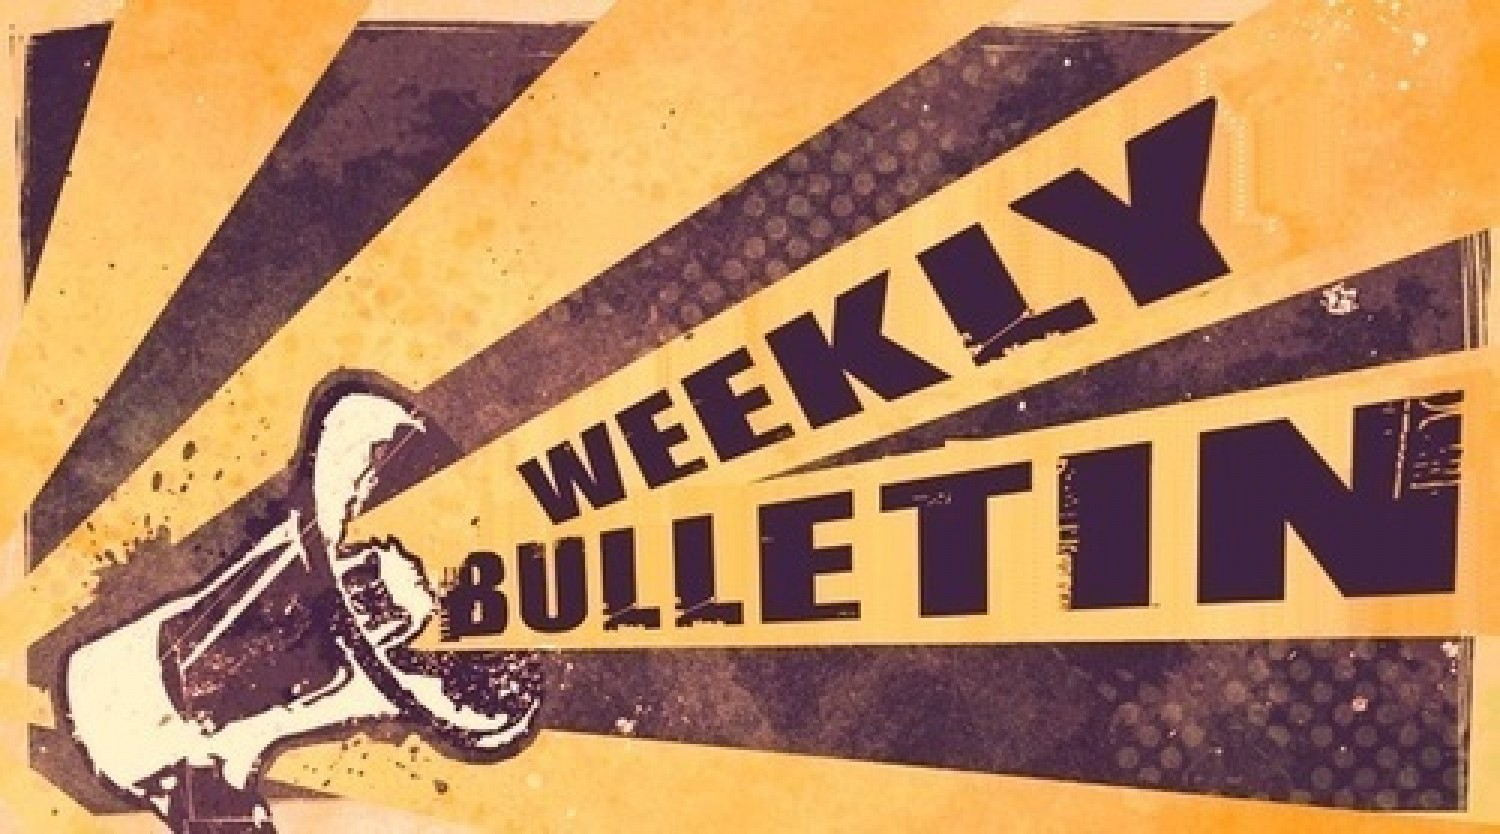 Weekly Bulletin June 7th